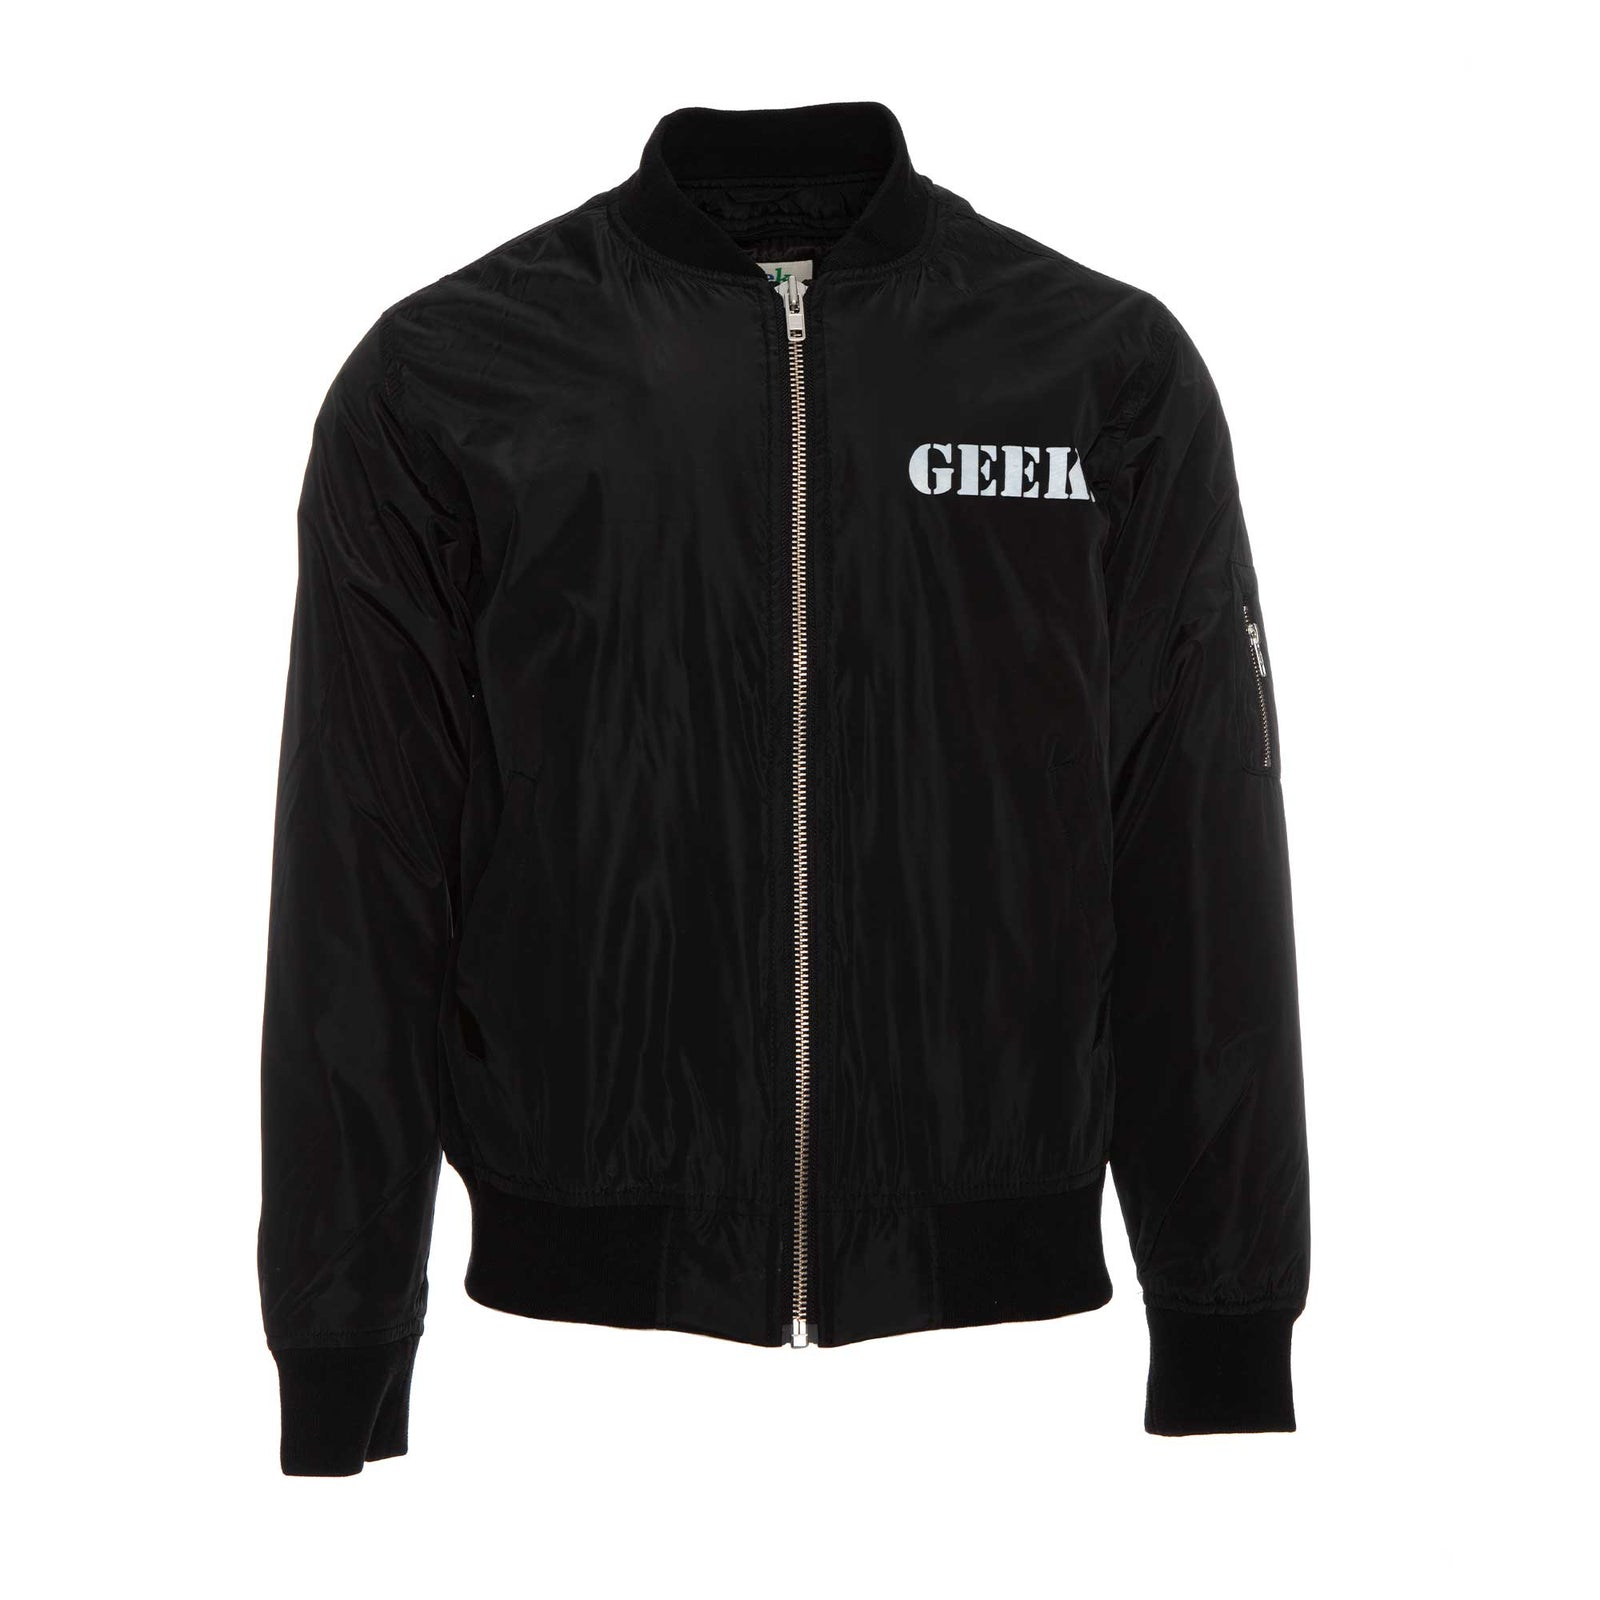 Fashion Geek by Alonzo Jackson Army Style Geek Jacket Black